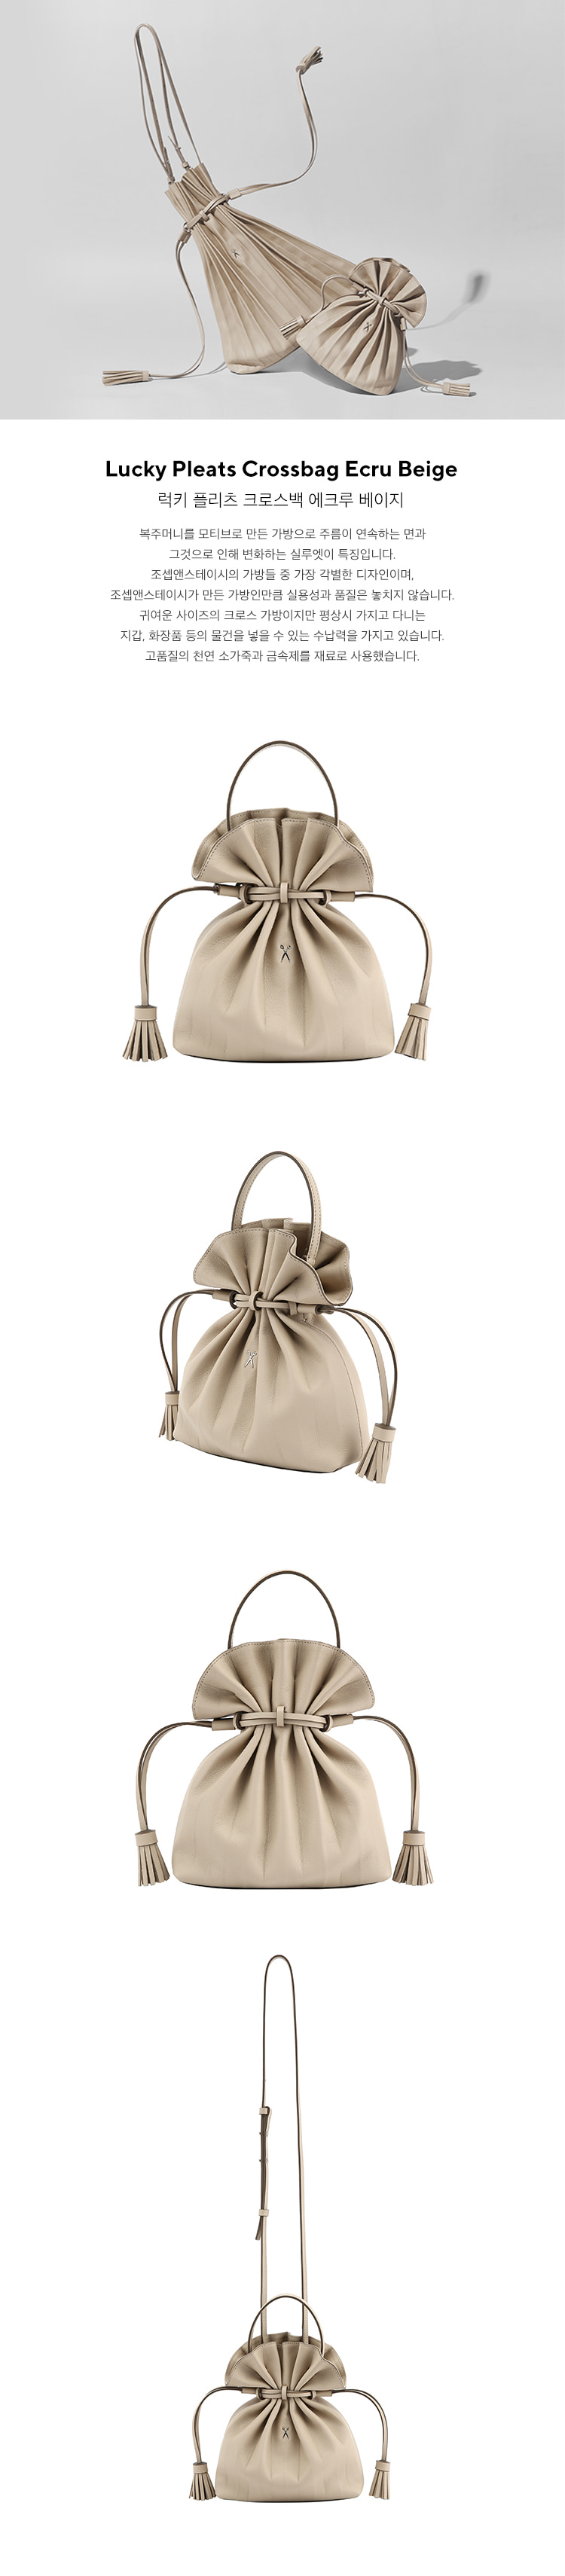 조셉앤스테이시(JOSEPH&STACEY) Lucky Pleats Crossbag Ecru Beige